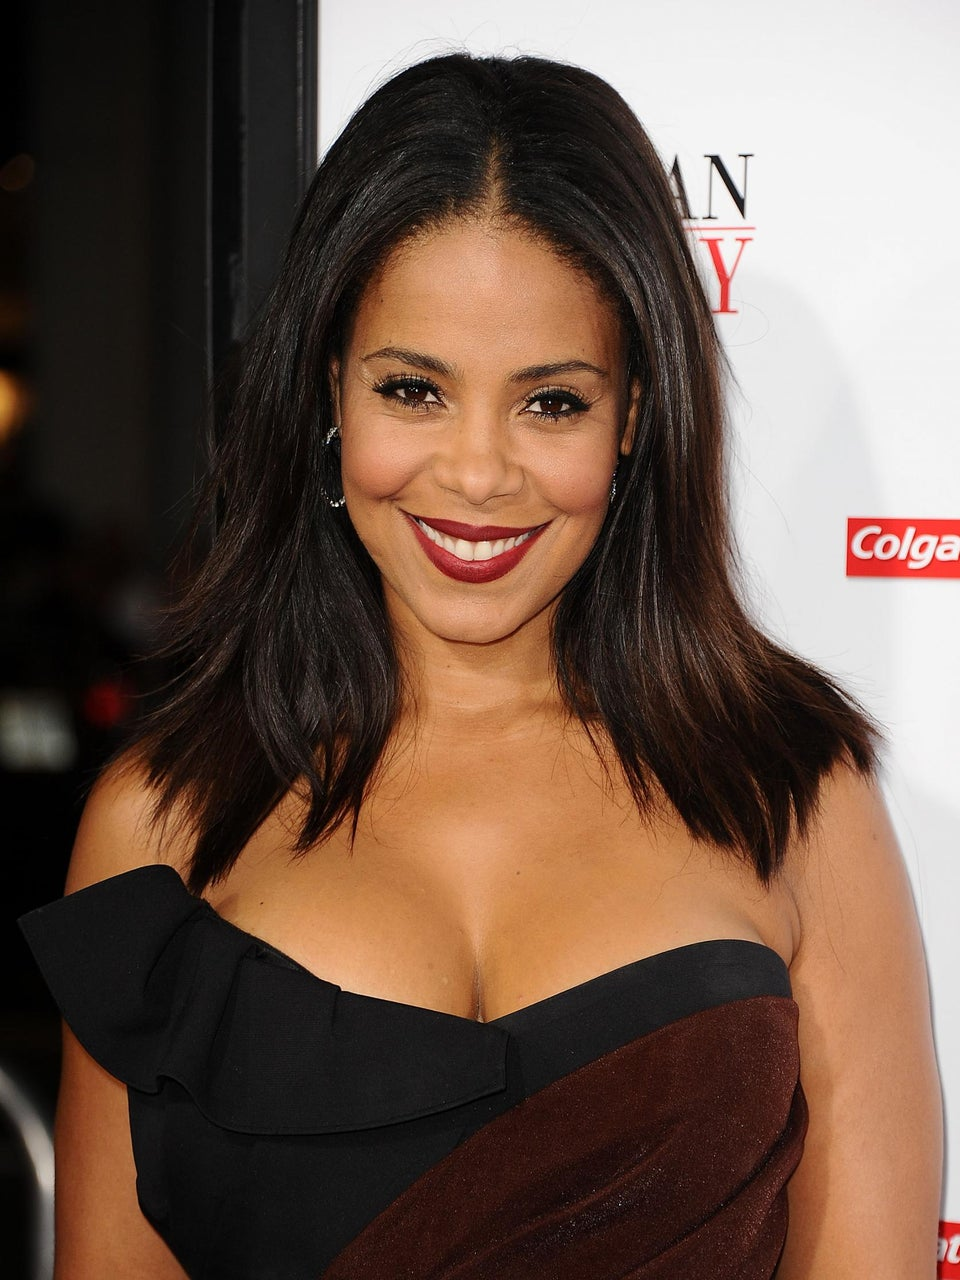 Sanaa Lathan Lands Role In New Fox Series